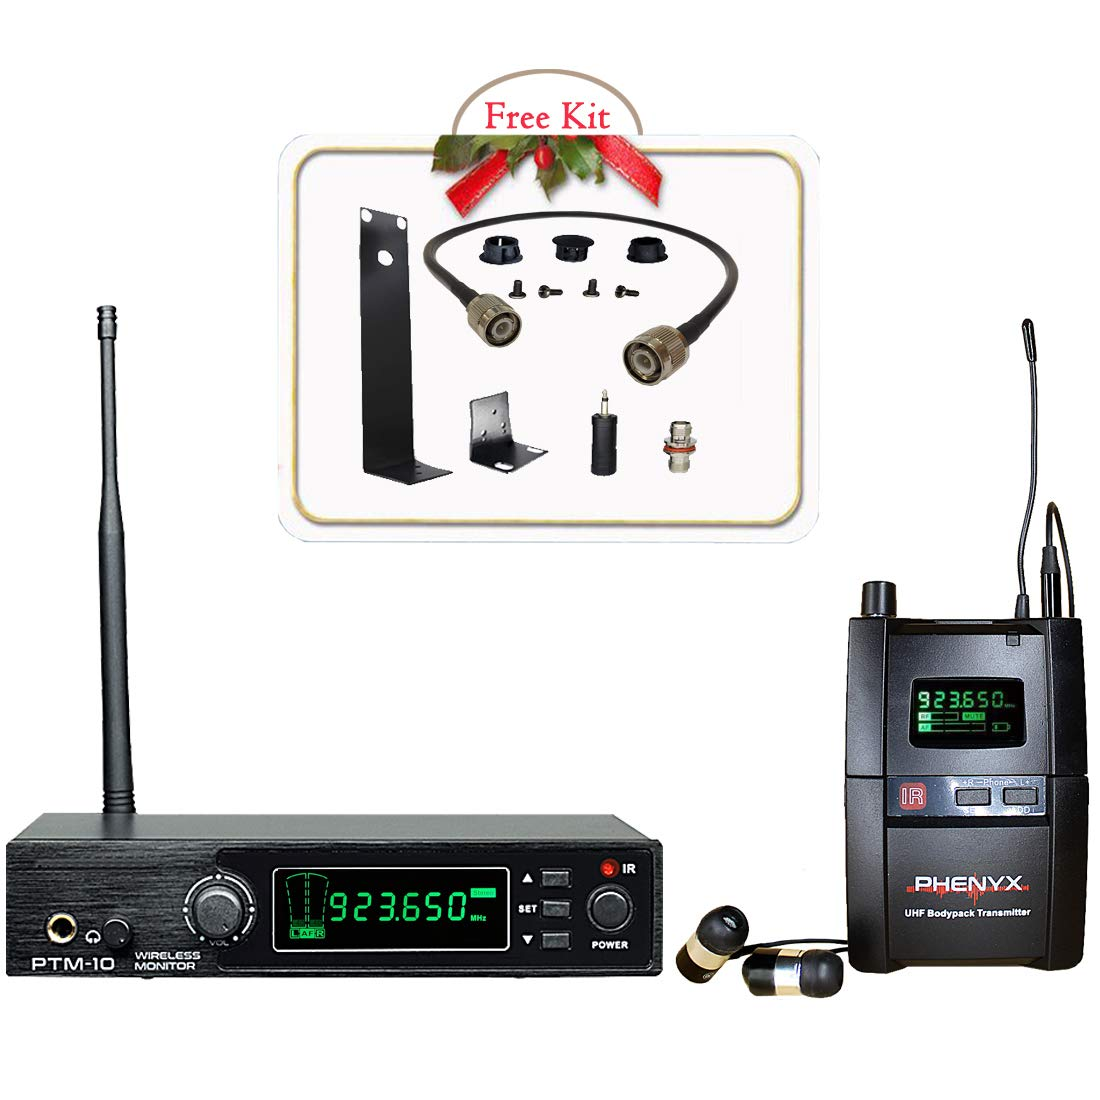 Phenyx Pro UHF Stereo Wireless in Ear Audio Monitor System, Selectable Frequency 900MHz Band, Rack Mountable, 160 ft. Operation, Ideal for Stage, Studio, Exhibit, Lecture, Speech PTM-10